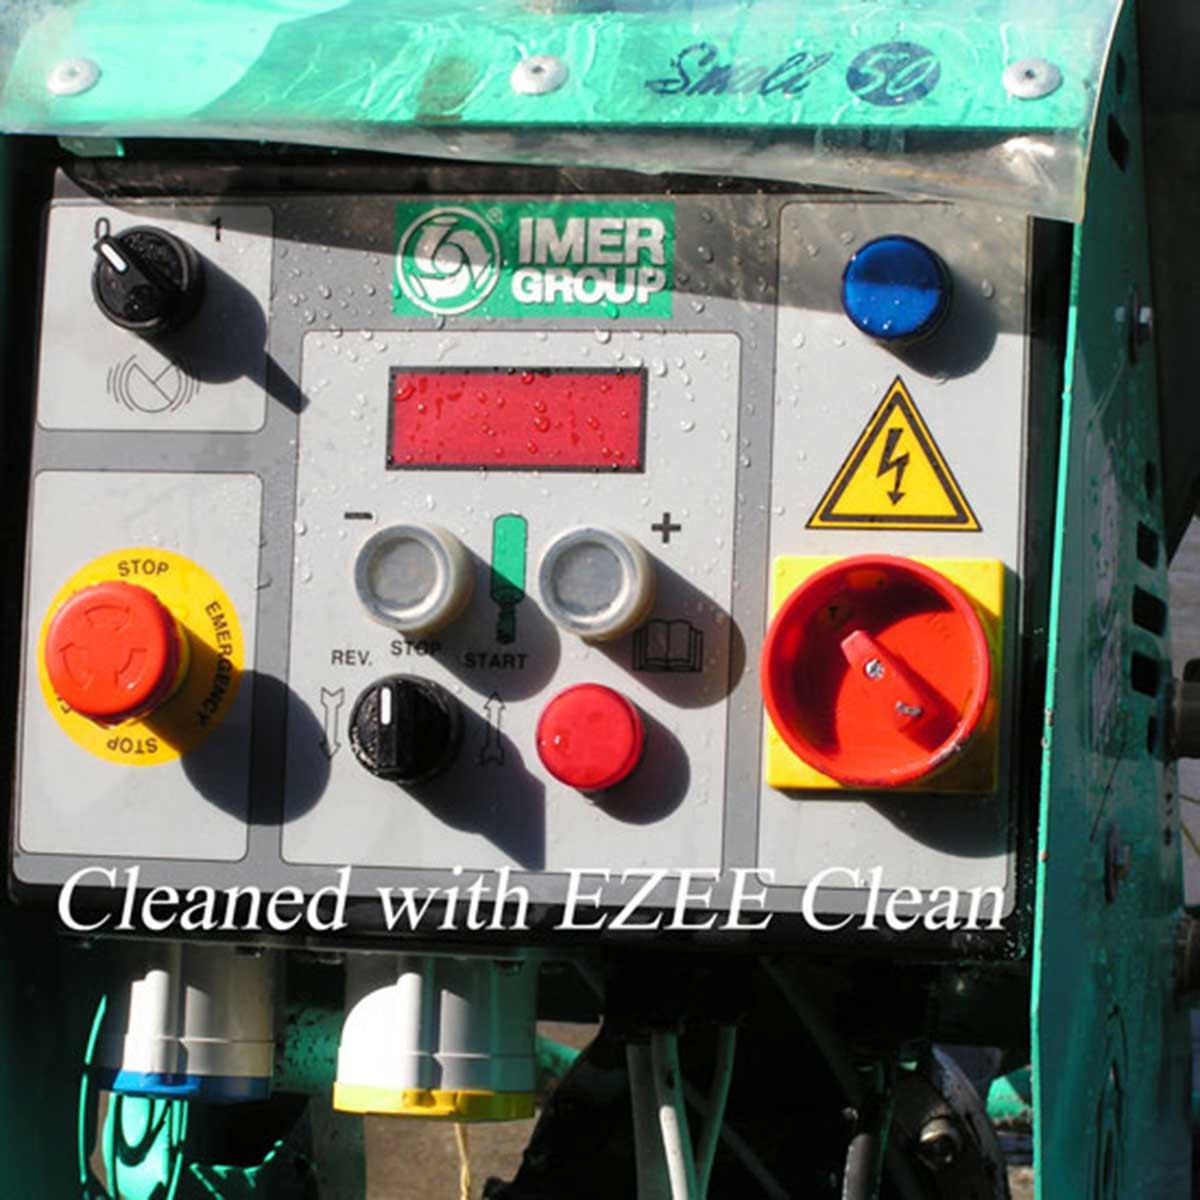 Imer Ezee Clean after application